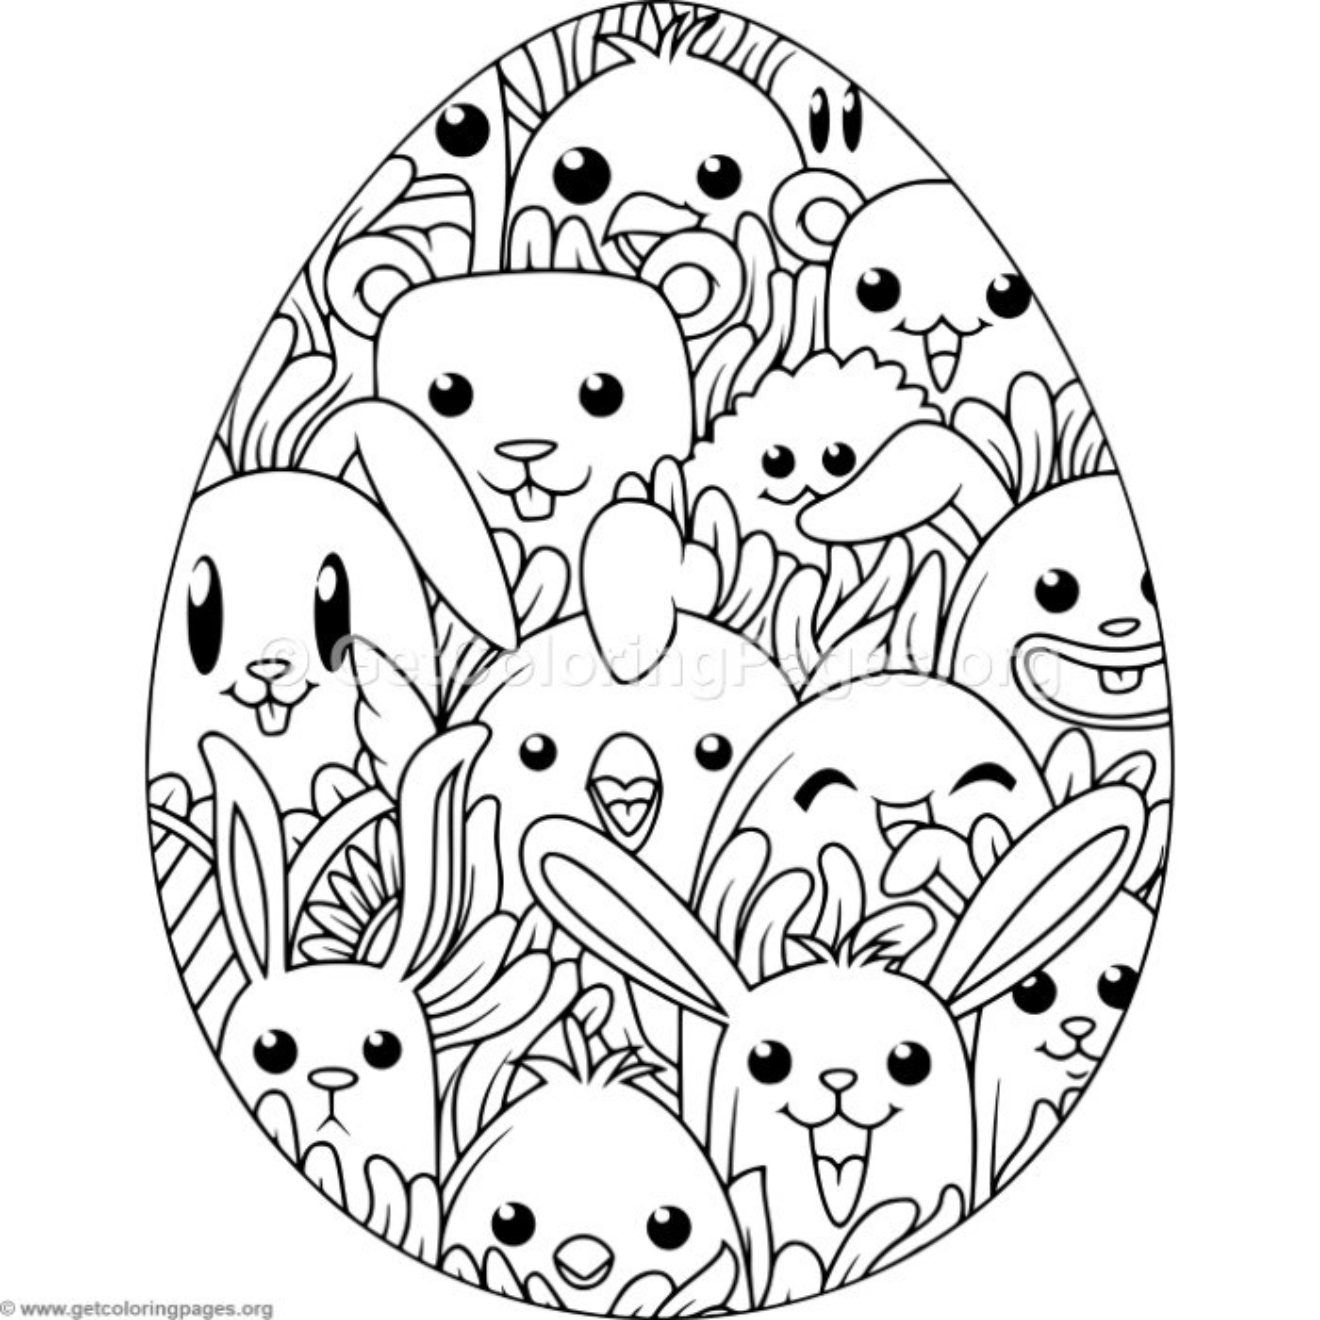 Easter Coloring Pages Getcoloringpages Org Easter Coloring Book Easter Egg Coloring Pages Easter Coloring Pages